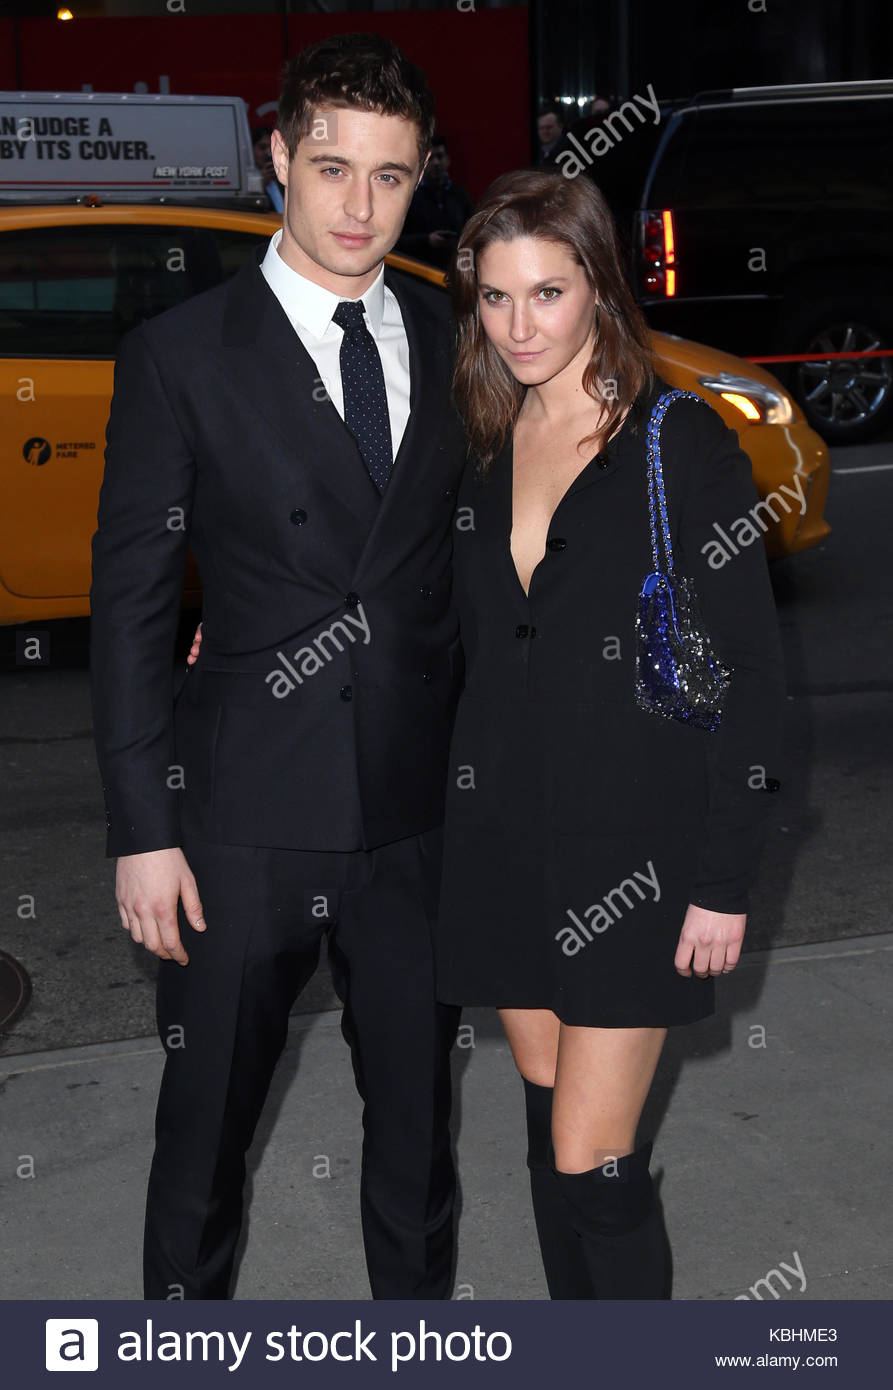 Max Irons, Sophie Pera. Celebrities at the Woman in Gold